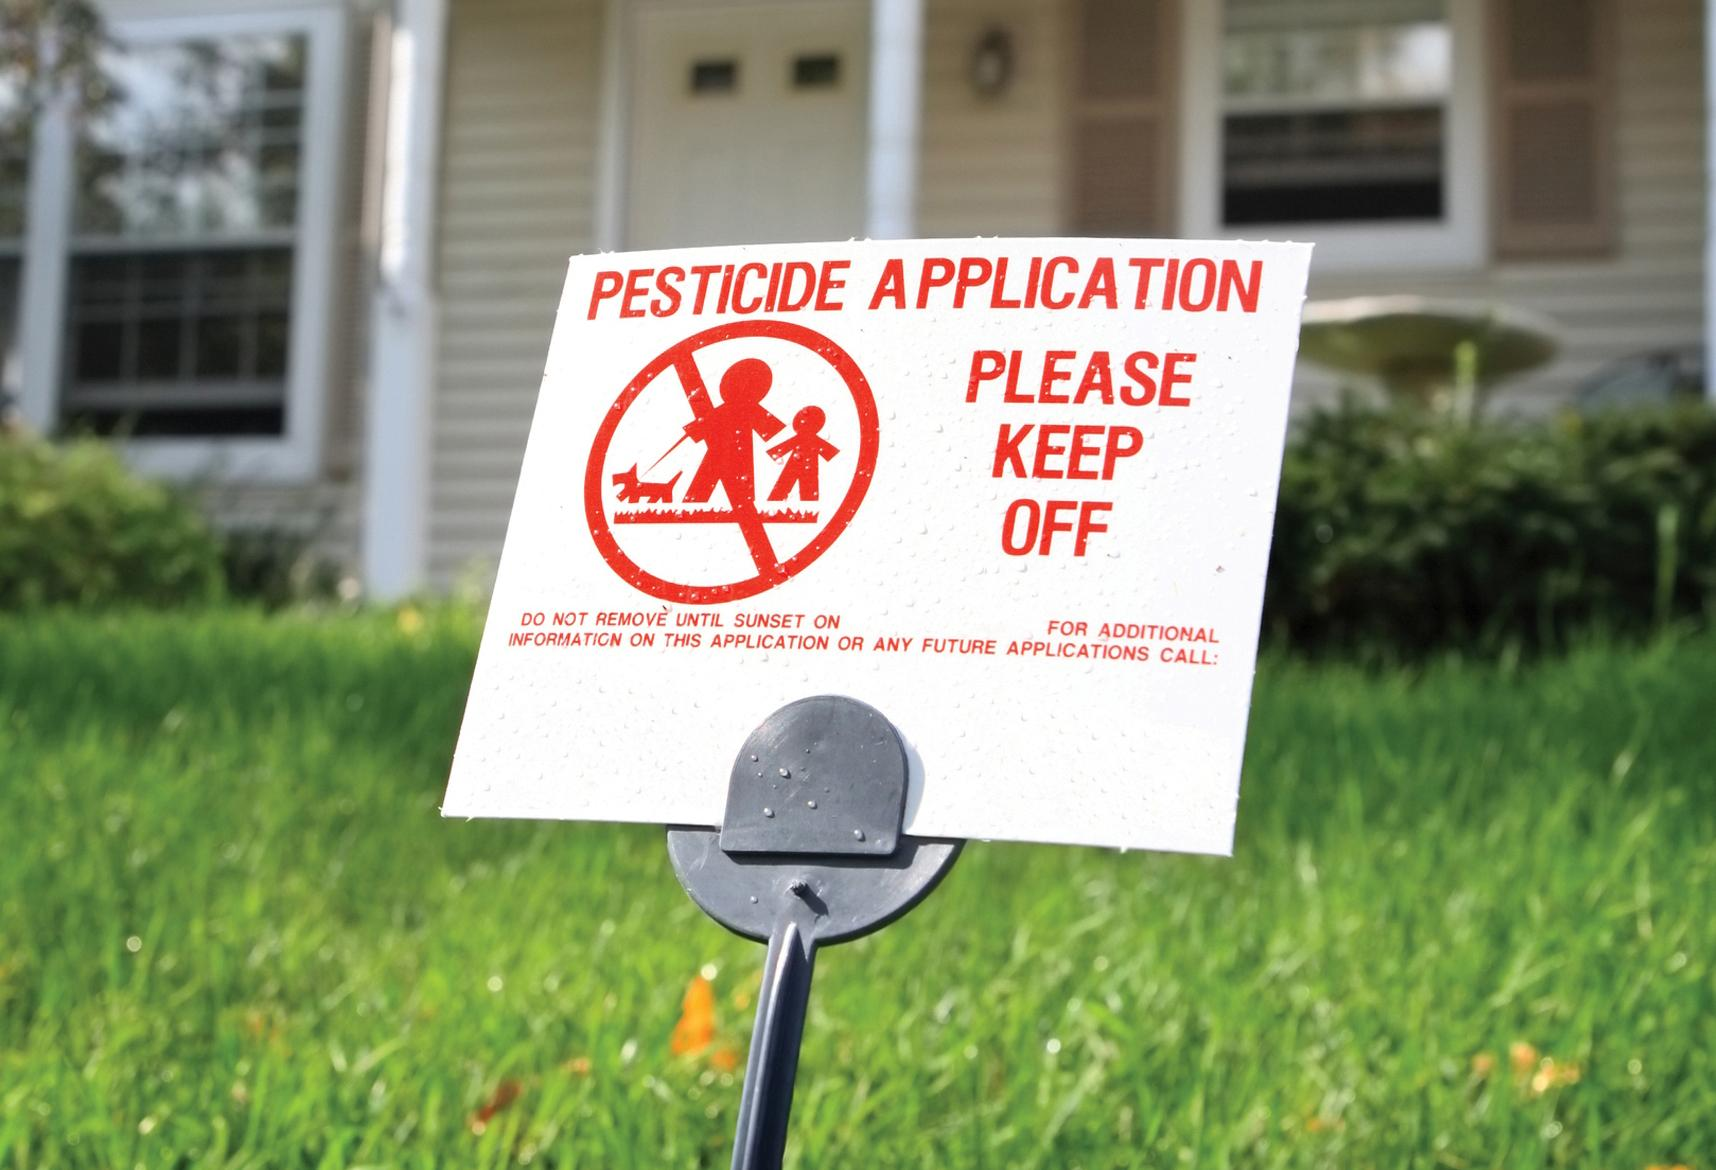 Pesticides target unwanted insects, plants and fungi but bring unintended consequences such as harming beneficial insects, other wildlife and sometimes people, according to the Midwest Action Pesticide Center. (Midwest Action Pesticide Center)